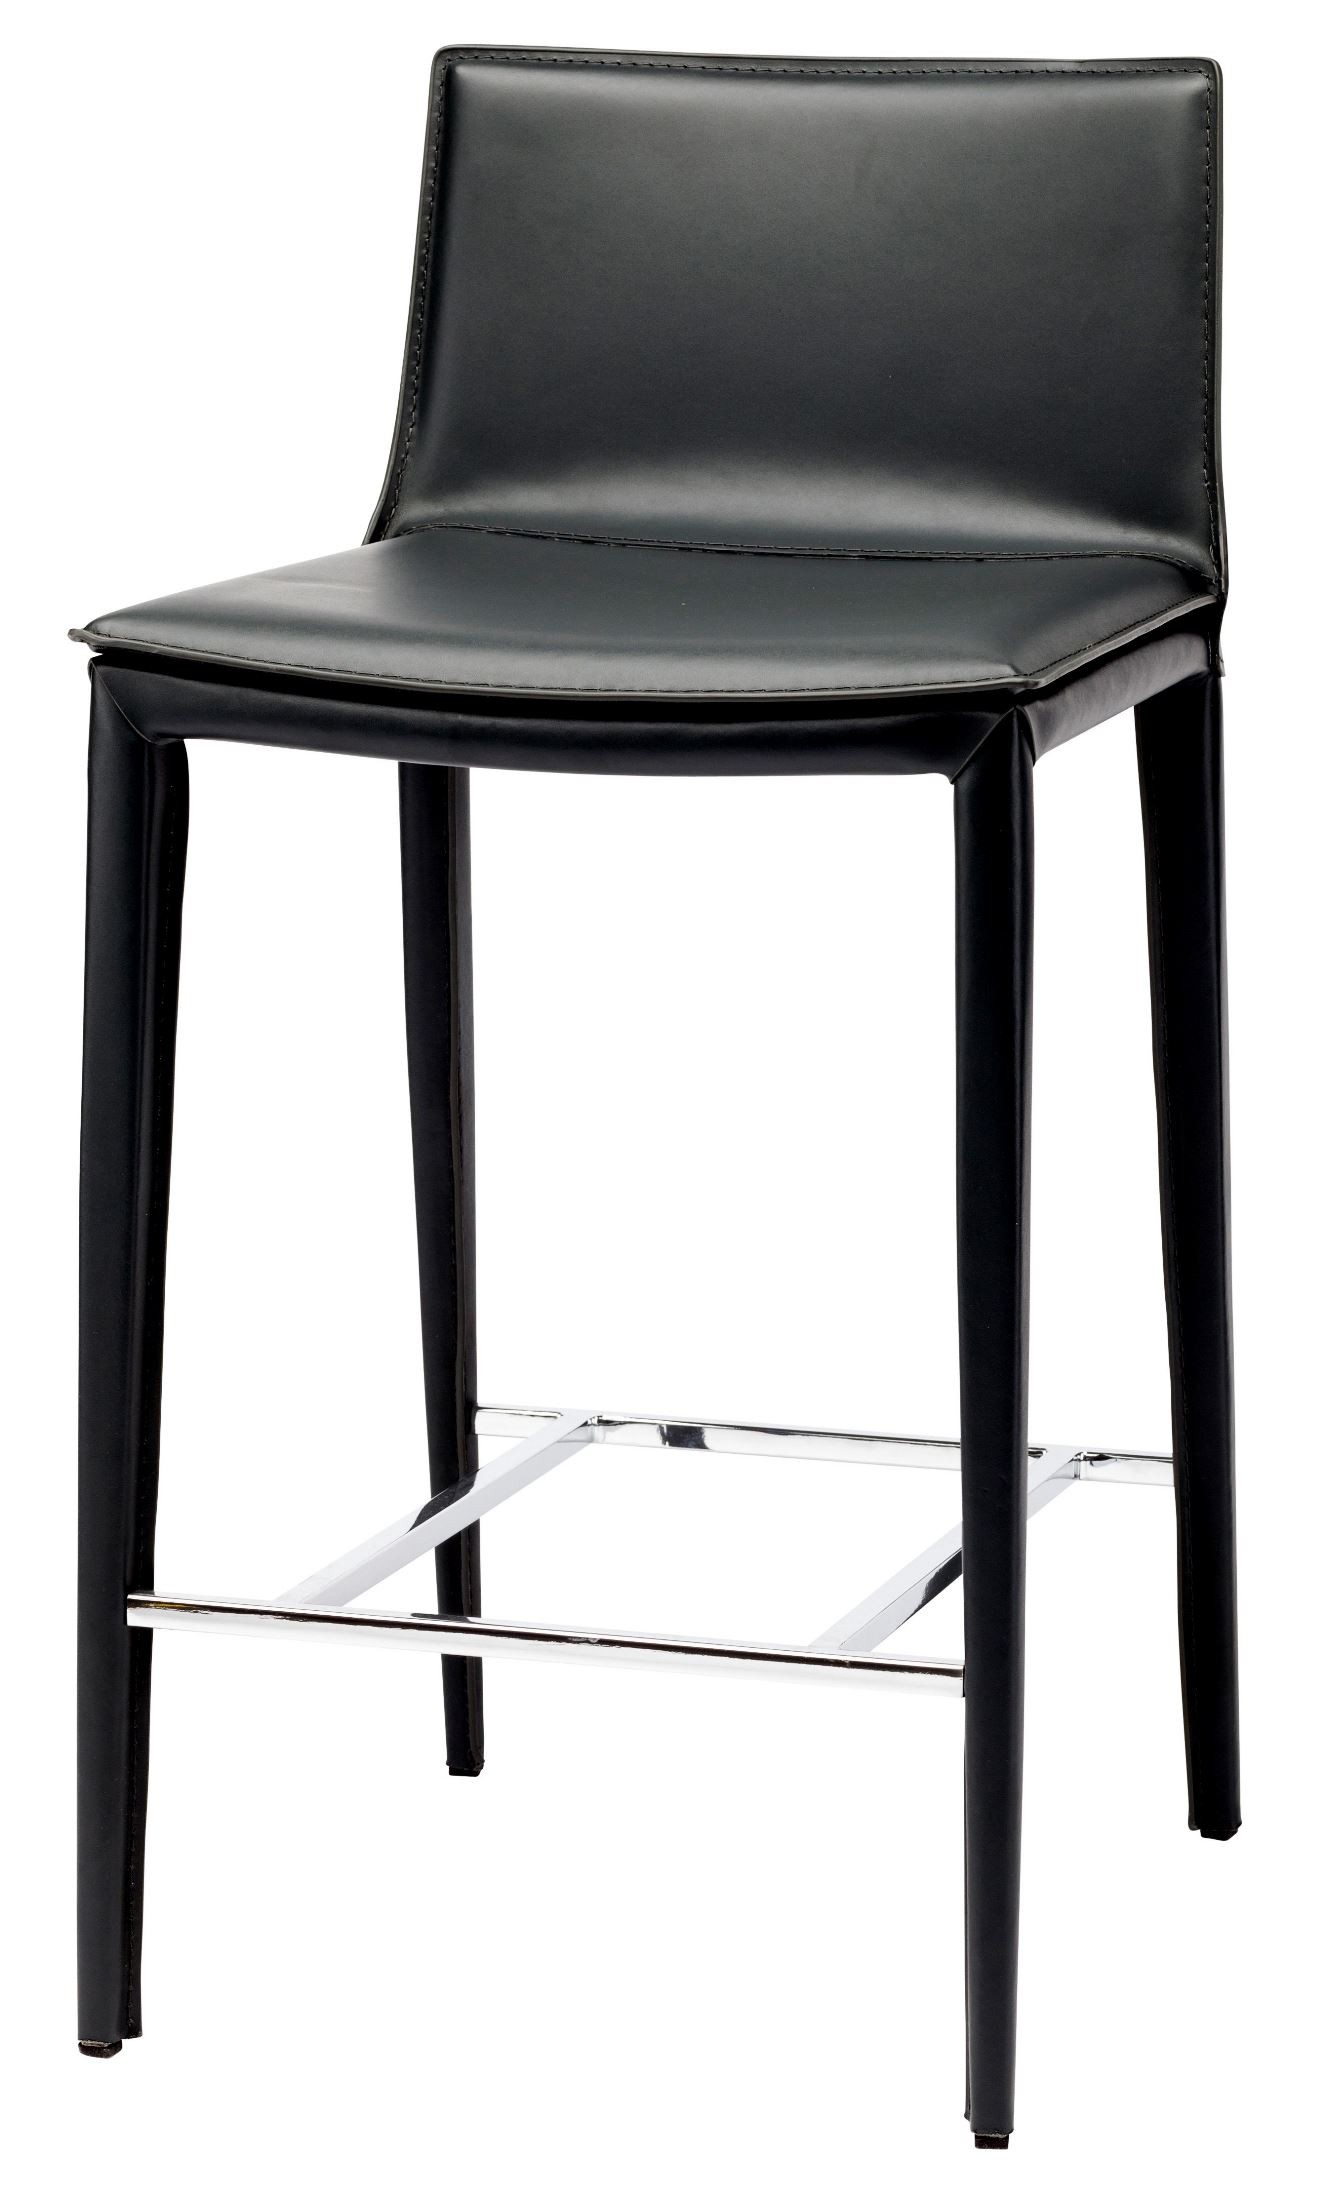 Palma black leather counter stool hgnd112 nuevo for Black counter stools